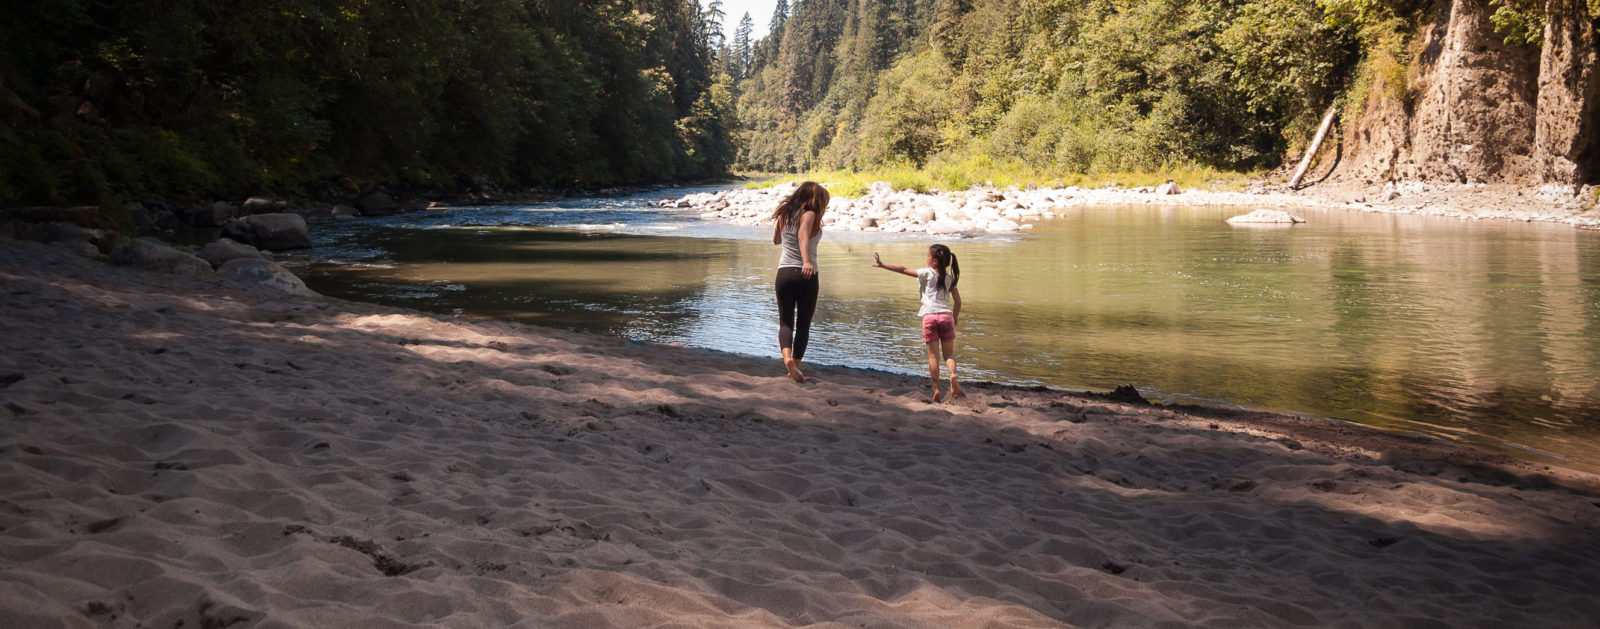 Sandy River, OR